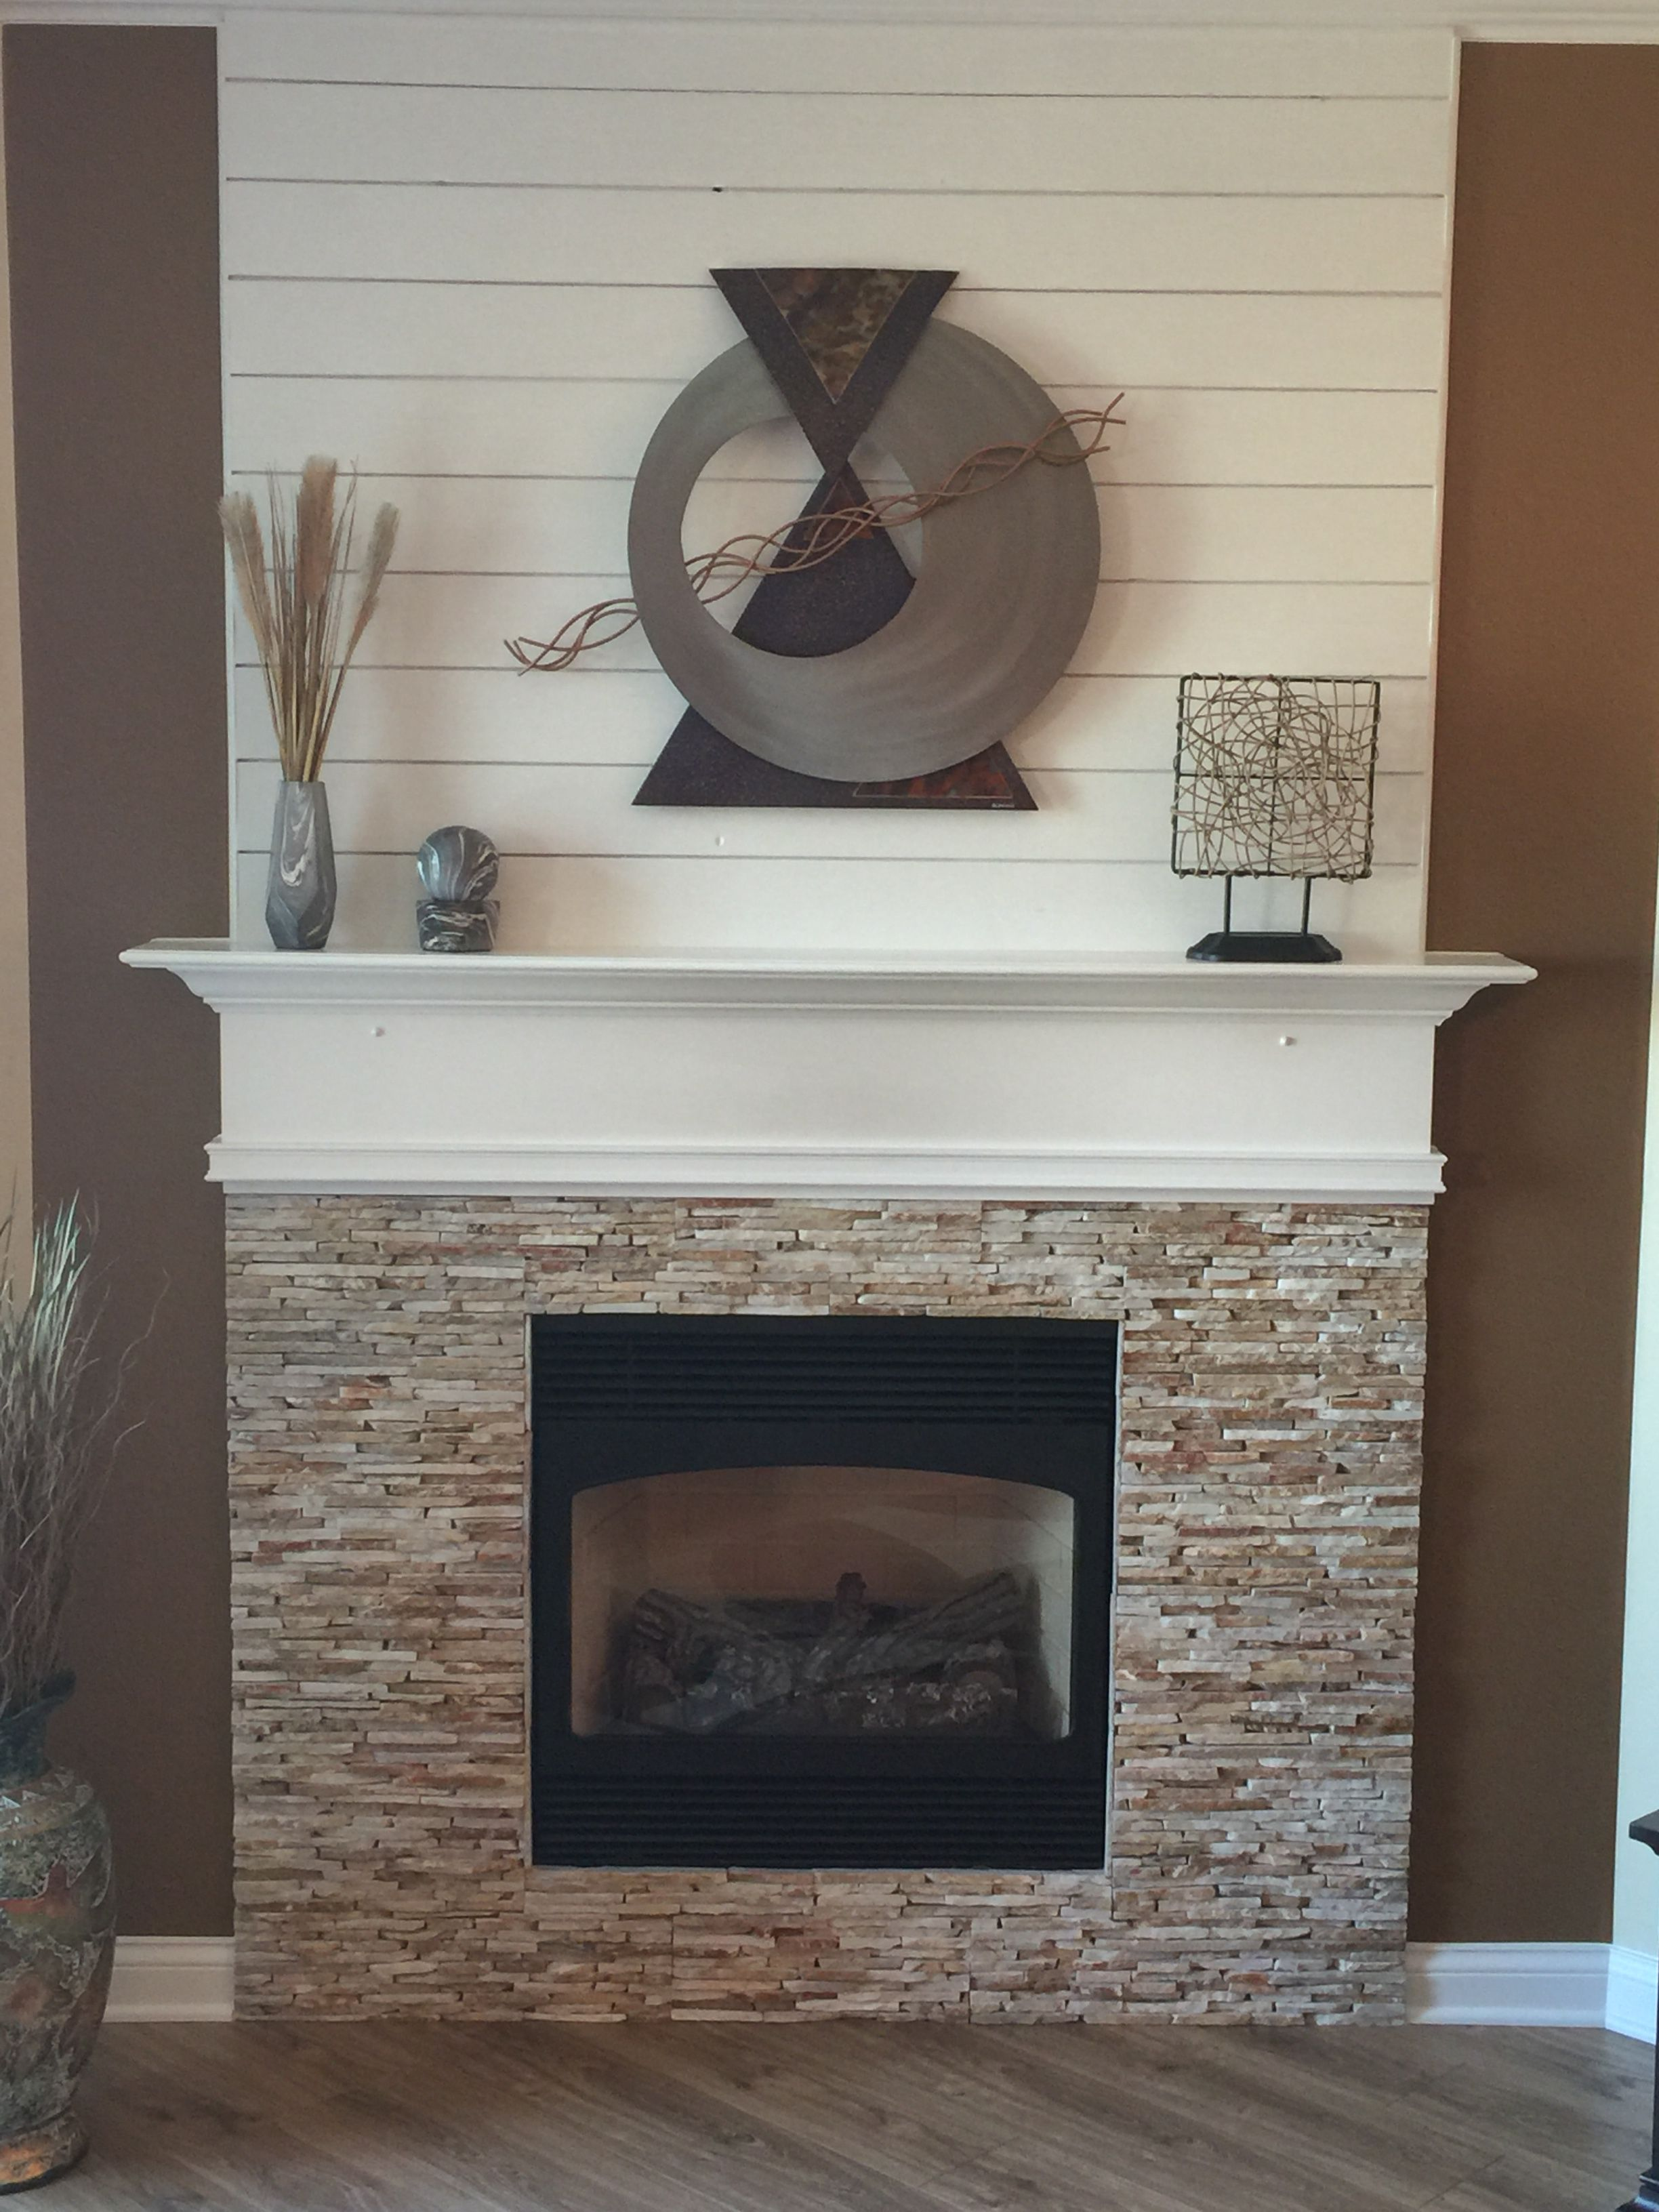 Updated Fireplace With Ledger Rock Floor And Decor Shiplap Wall Home Depot Wall Art C Jere New Aquagu Ship Lap Walls Fireplace Remodel Fireplace Seating